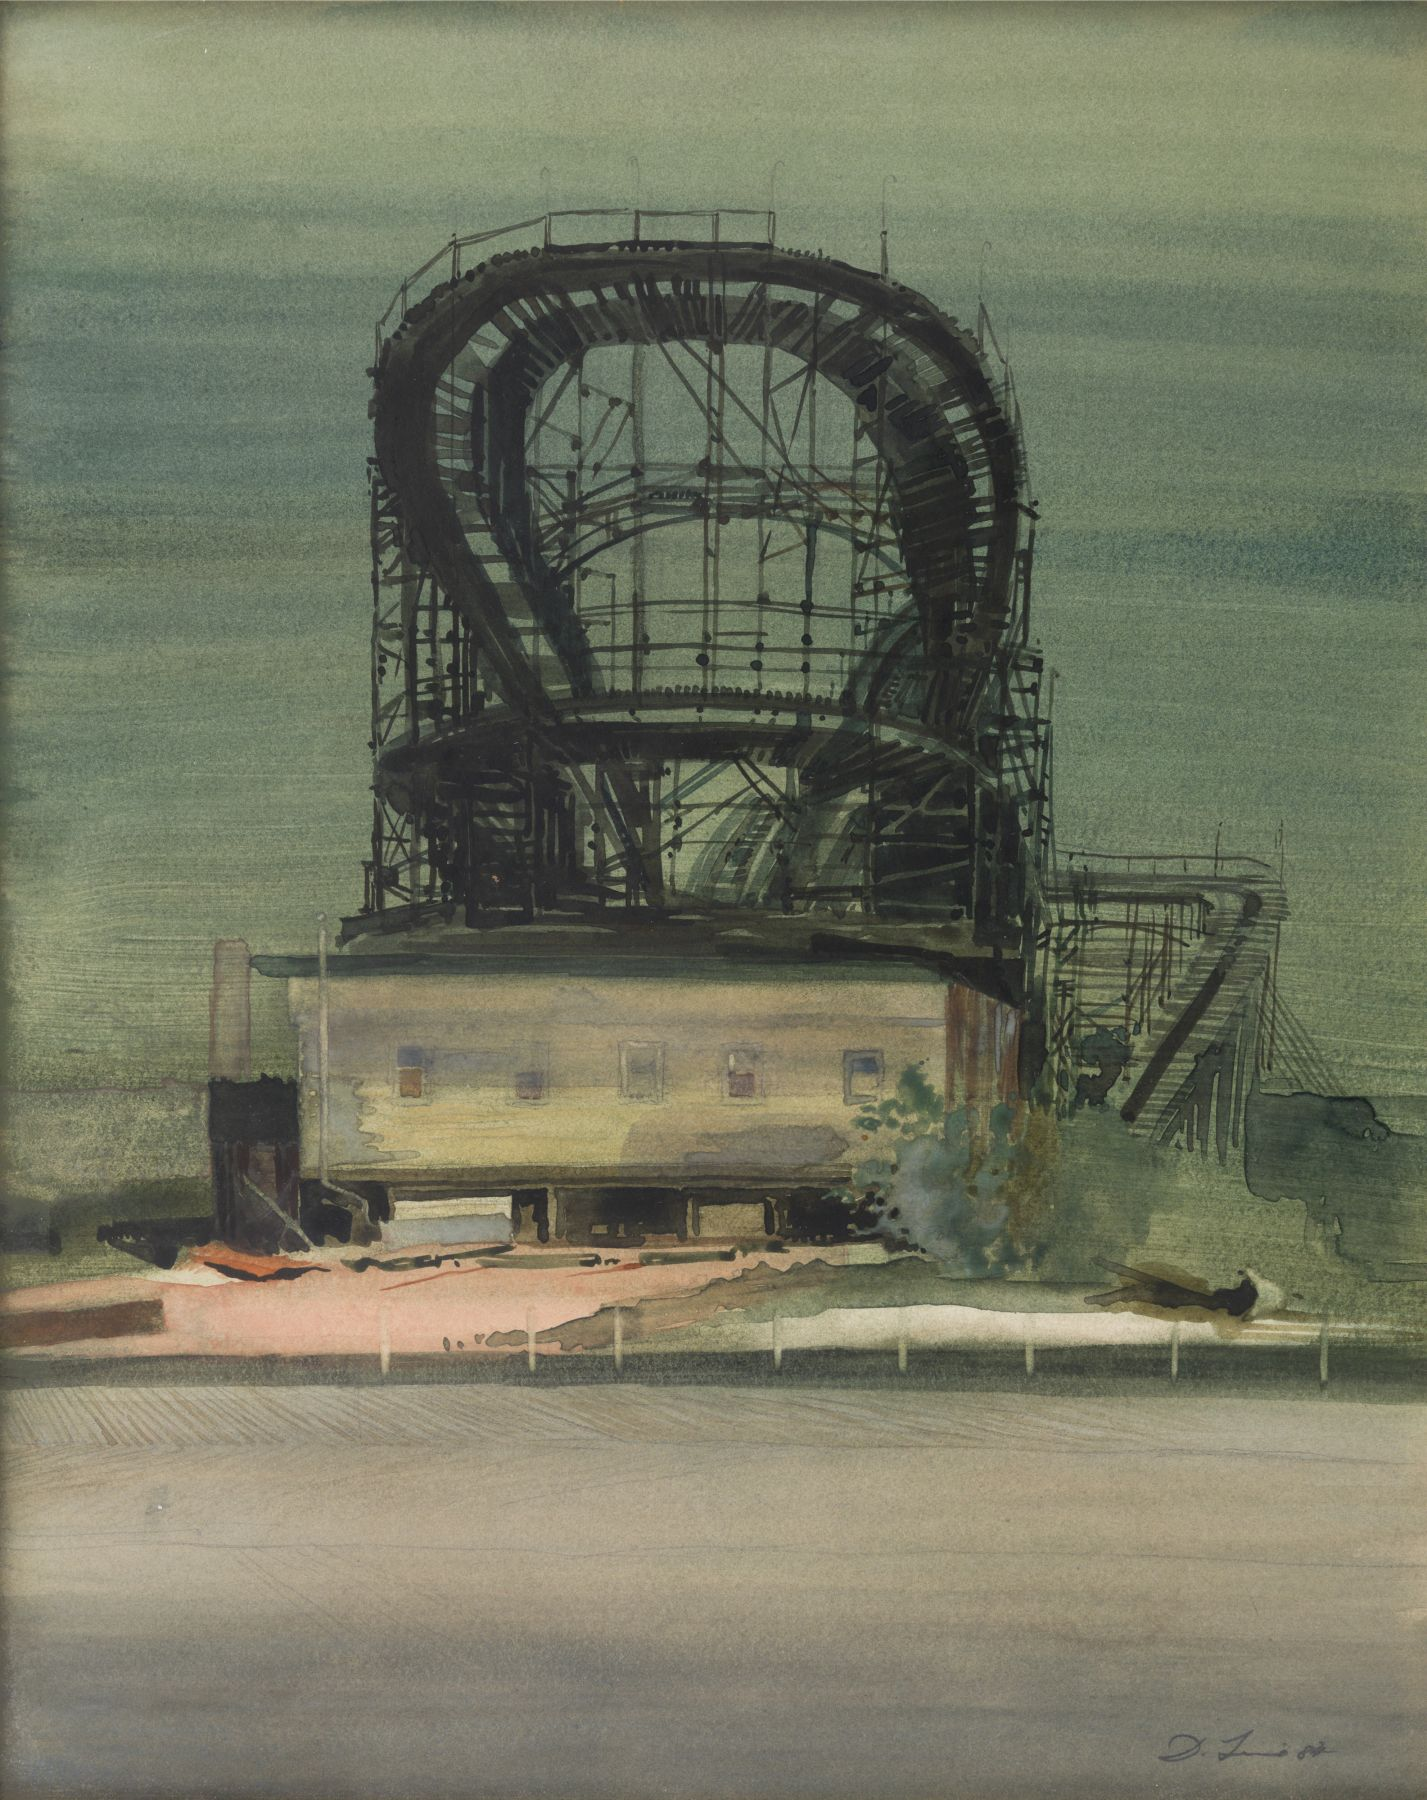 david levine, Goya at Coney (NFS), 1982, watercolor on paper, 15 x 12 inches